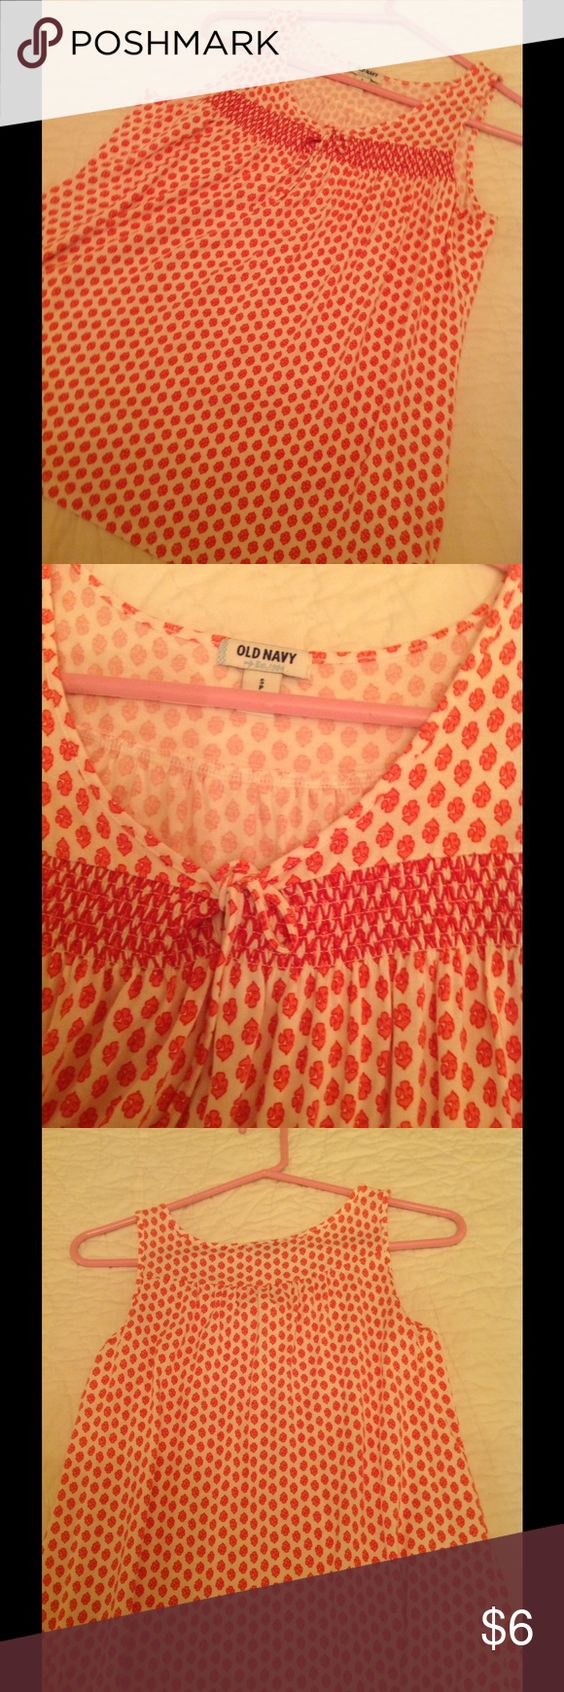 old navy summer top size small old navy coral & white top . size small. very cool and comfortable. no flaws. keyhole front with tie. Old Navy Tops